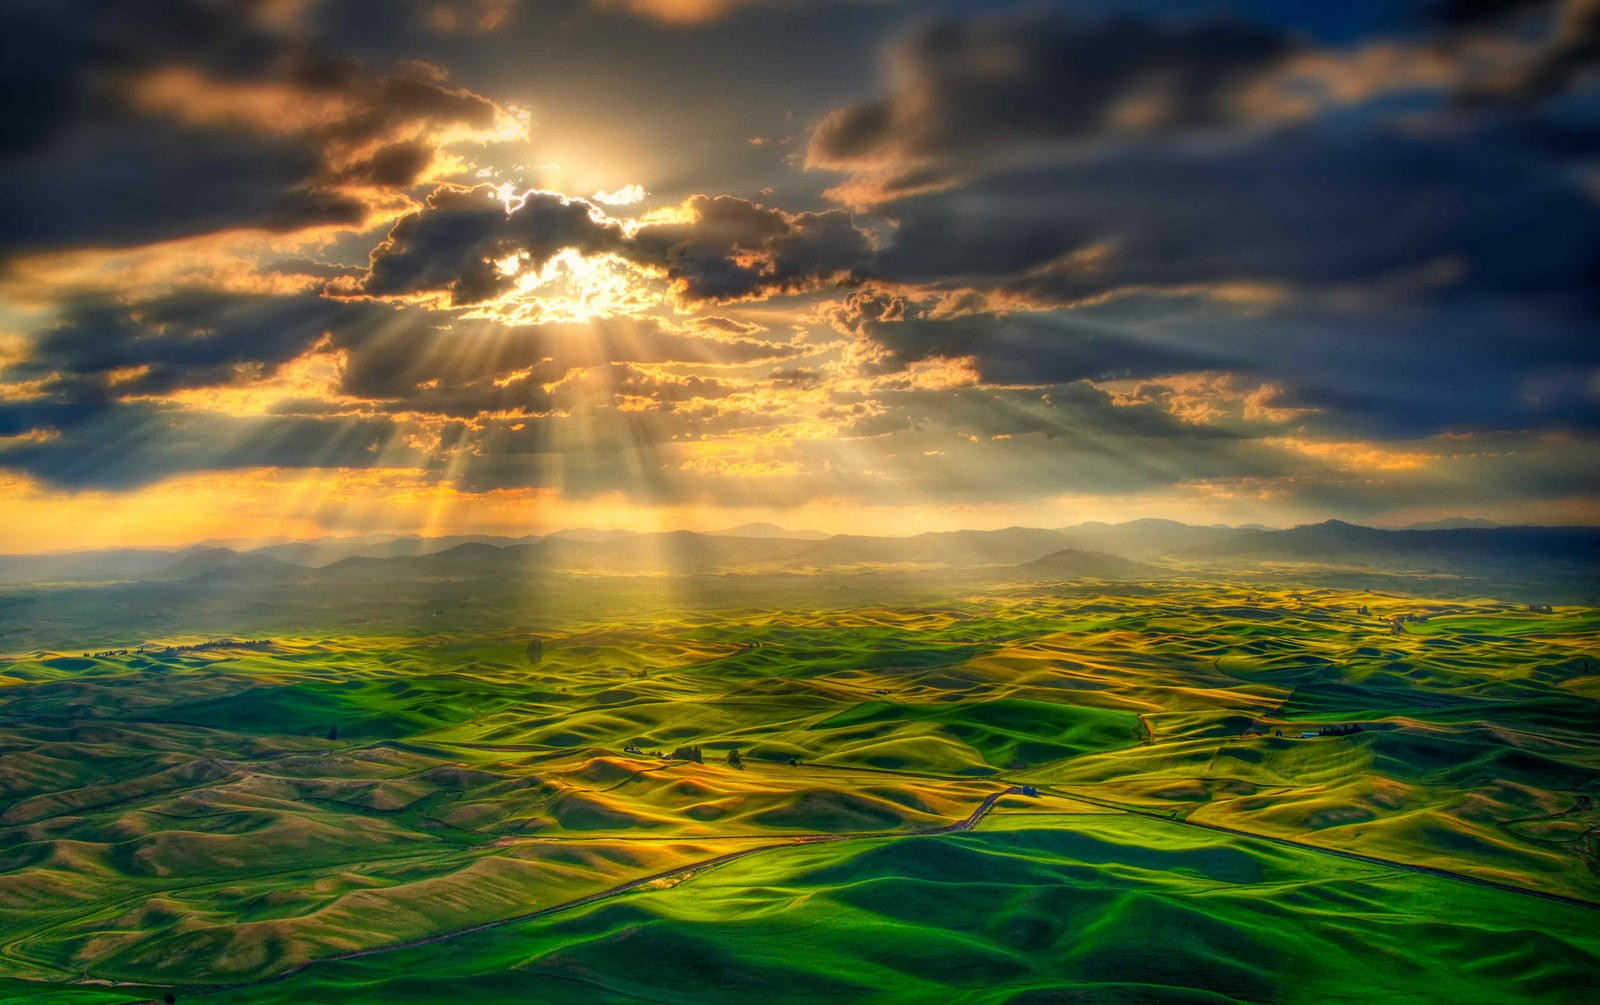 Anime Girls Wallpaper 4k Photography Nature Sun Rays Clouds Mountains Far View